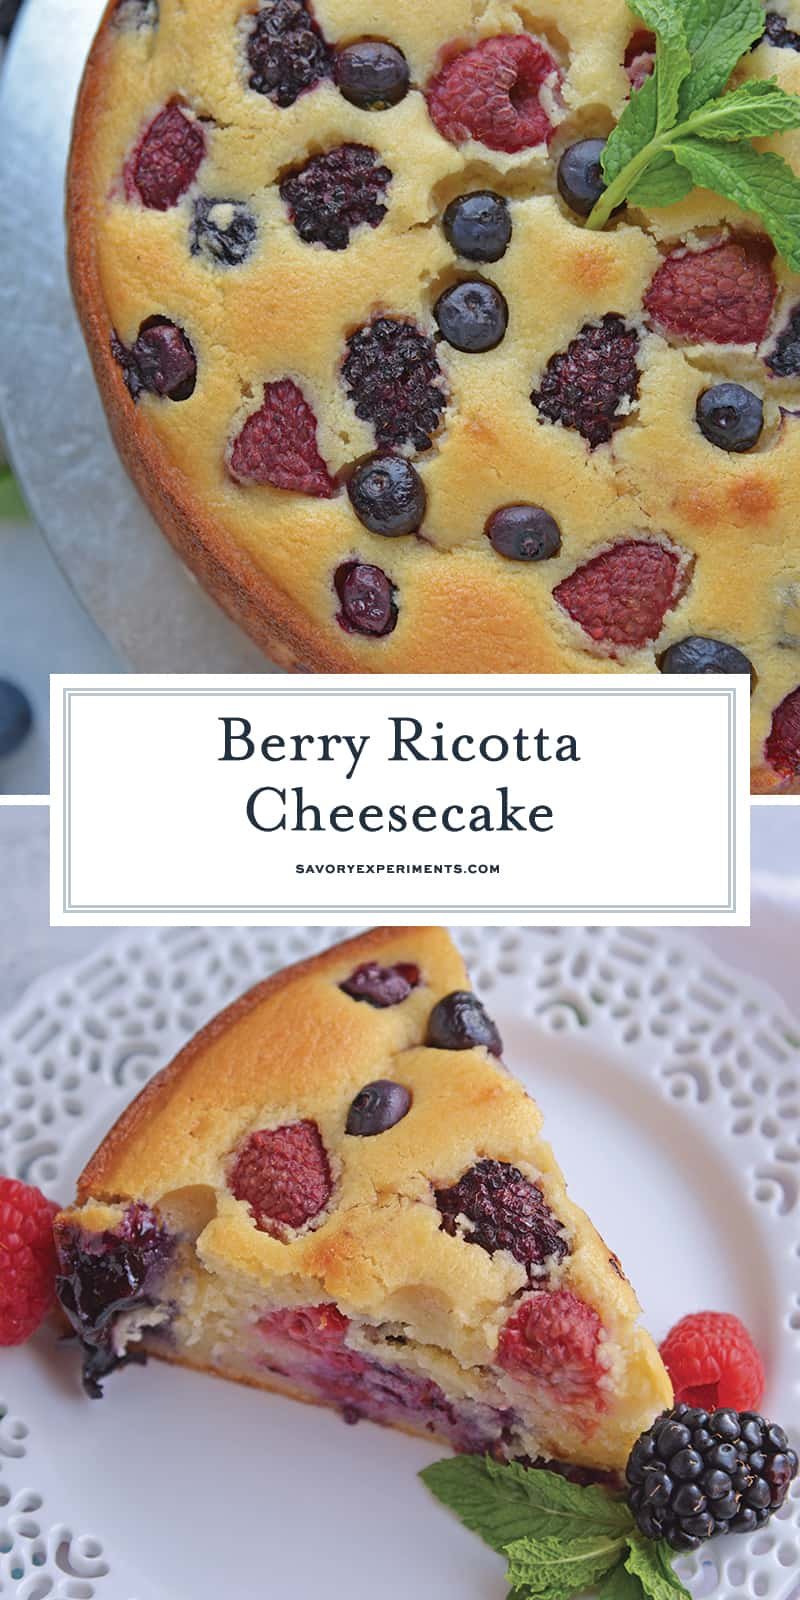 Berry Ricotta Cheesecake is a crustless homemade cheesecake recipe using smooth ricotta and fresh or frozen berries. The ultimate fruit cheesecake recipe! #homemadecheesecakerecipe #ricottacheesecake www.savoryexperiments.com